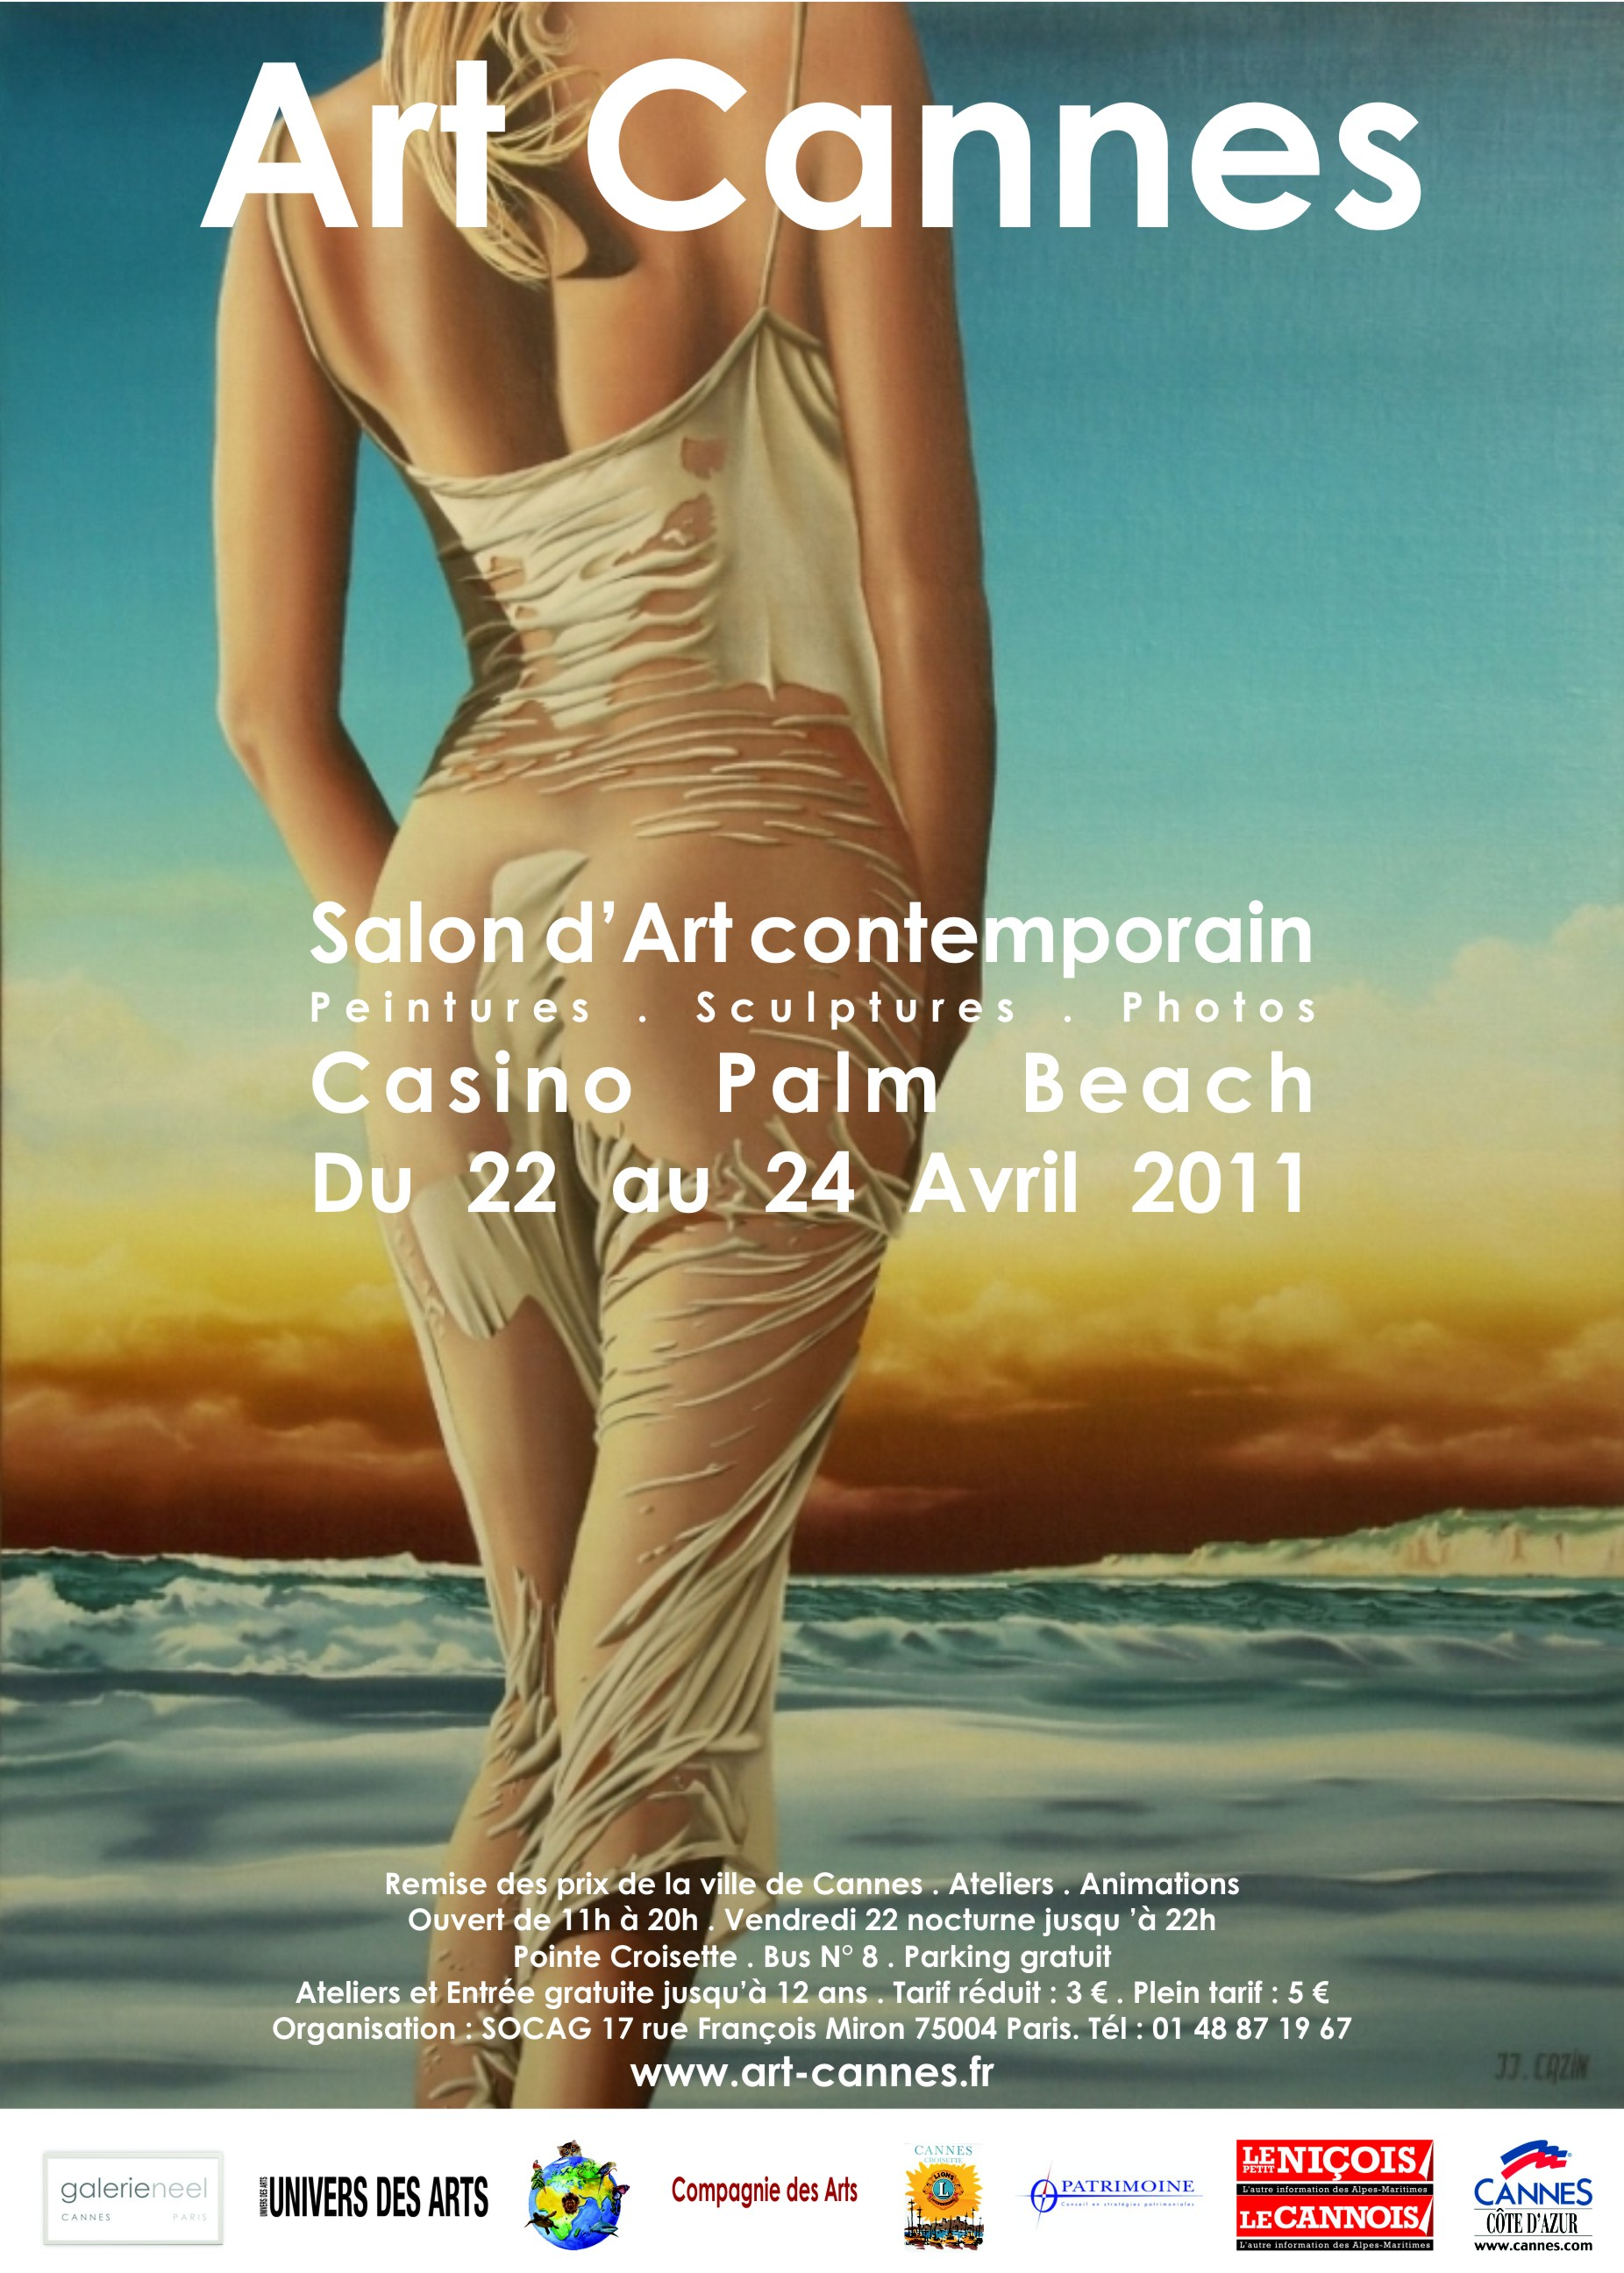 Affiche Art Cannes 2011 - jpg